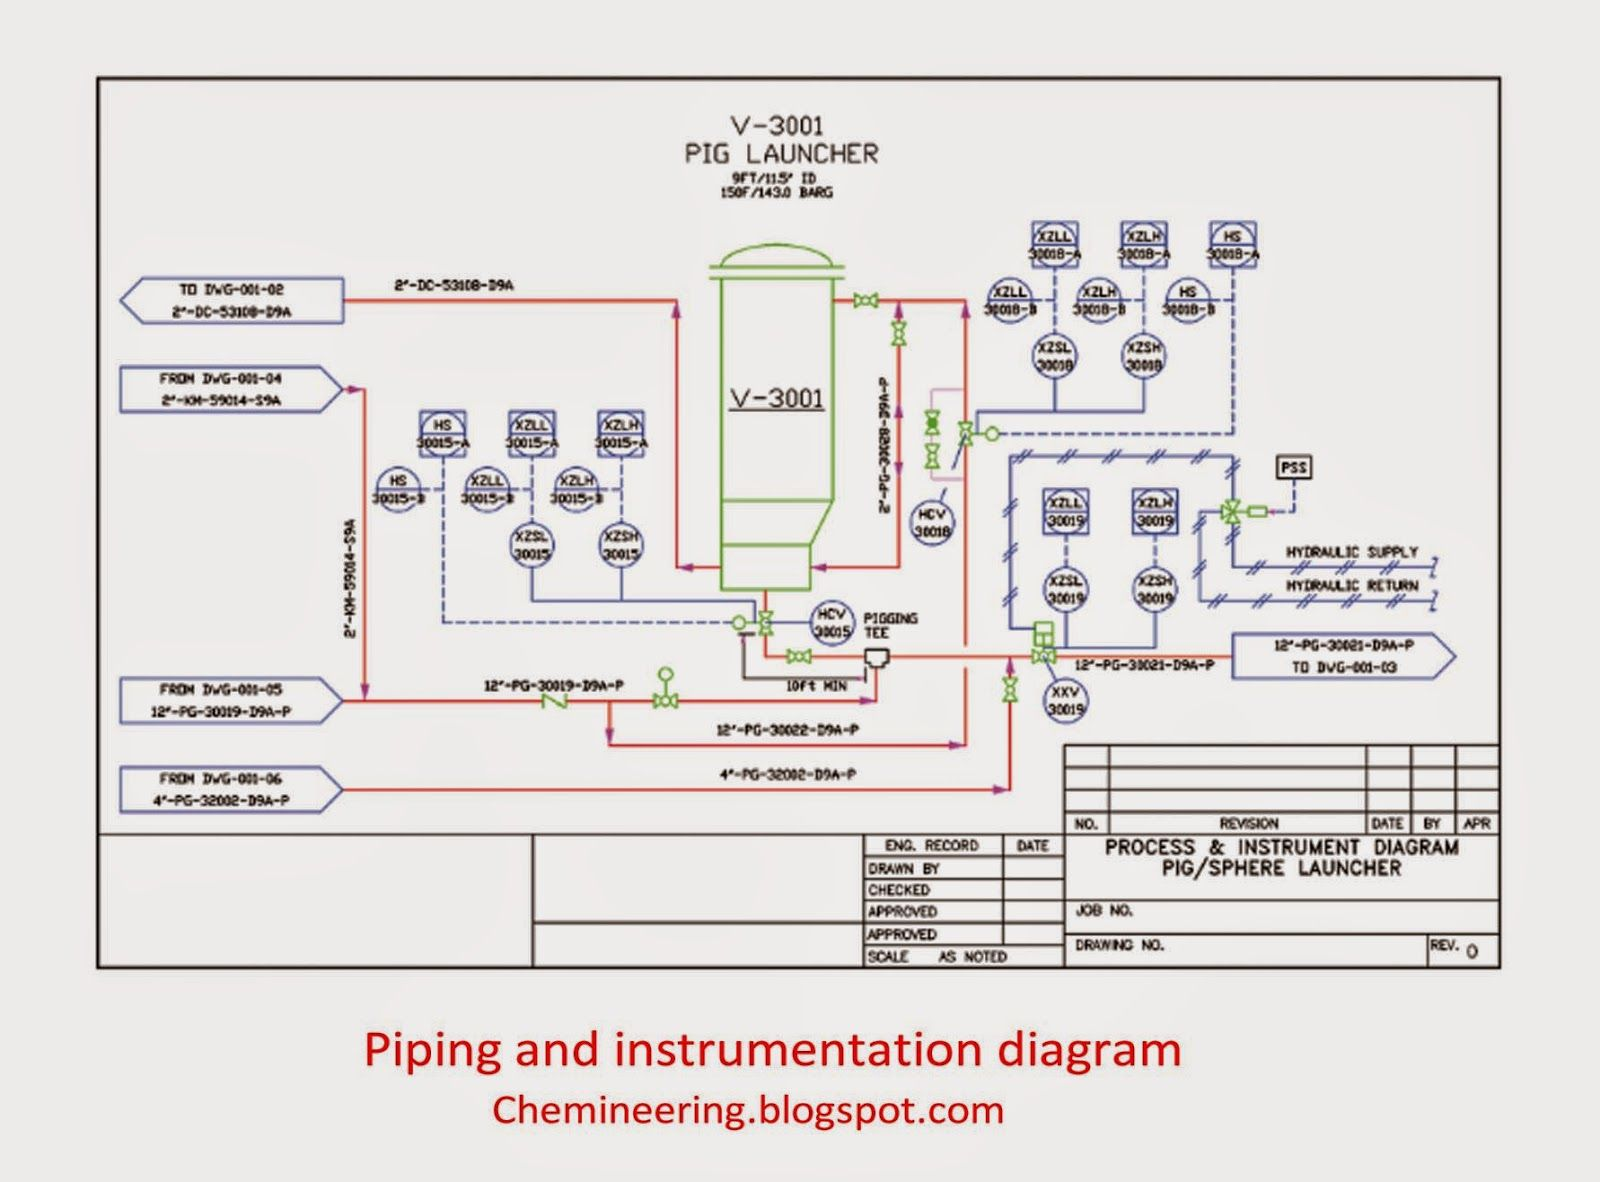 hight resolution of piping and instrumentation diagram by chemineering blogspot com piping instrumentation diagram pdf piping instrumentation diagram